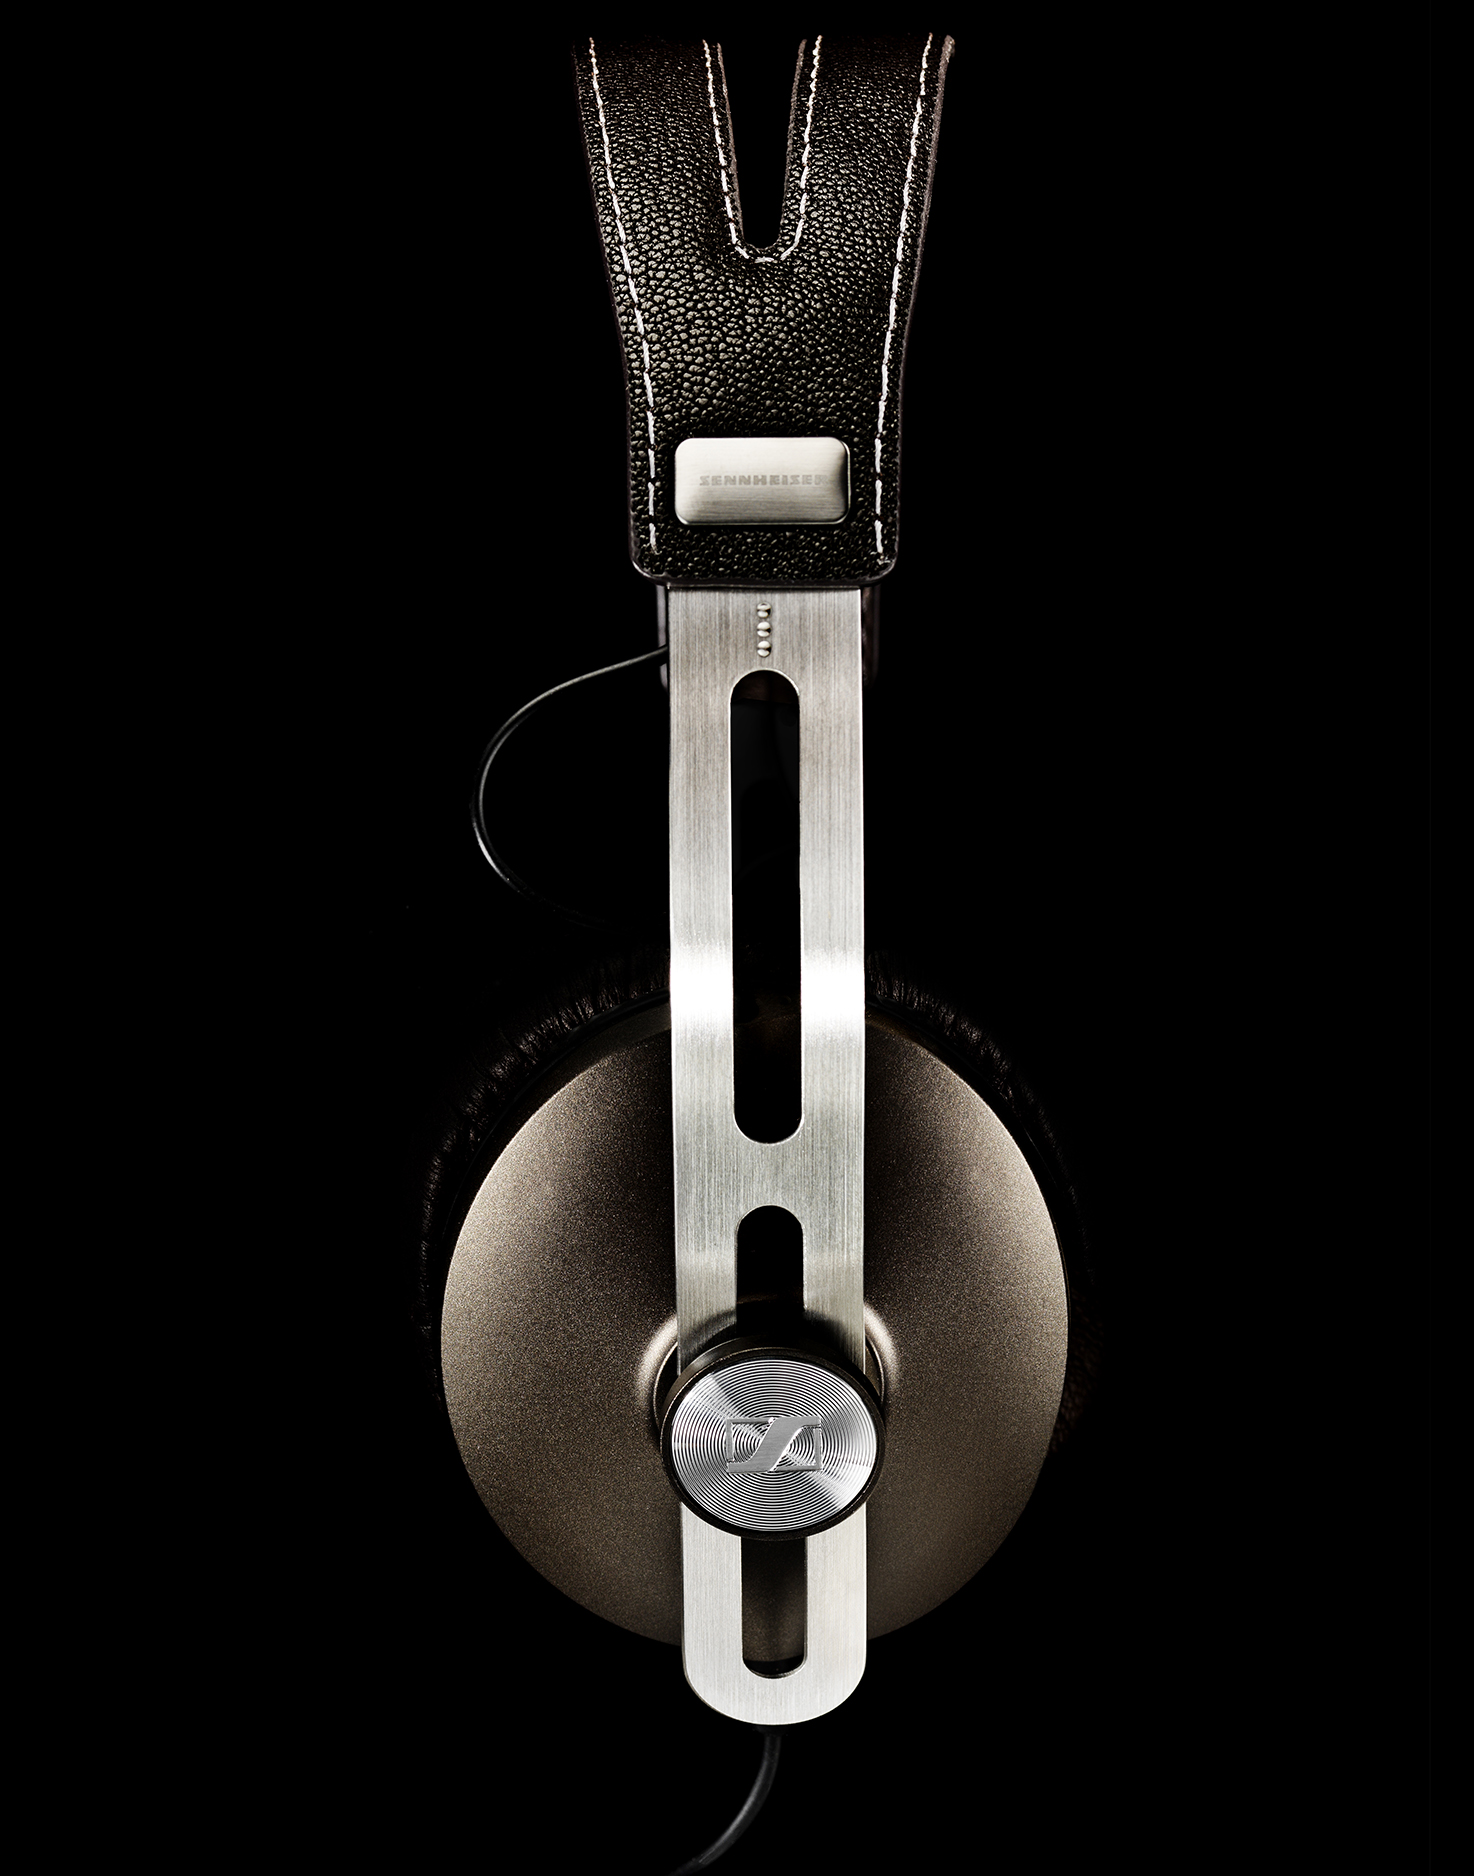 Sennheiser Momentum Headphones | RGG Photo